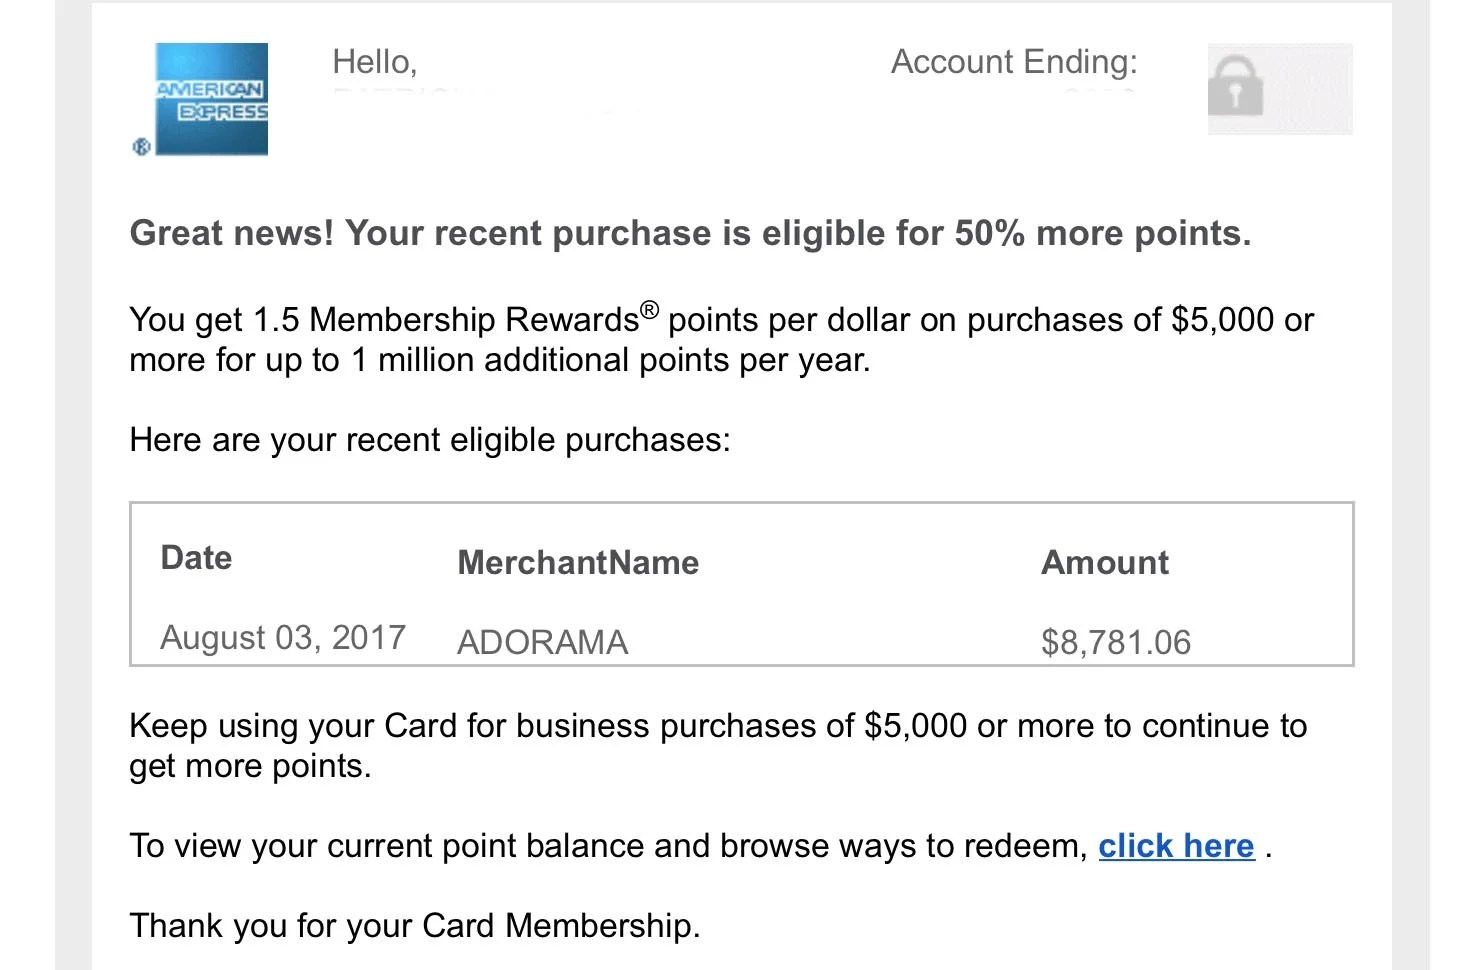 de487033dab The congratulations email from Amex told me I would receive the 50% bonus -  but